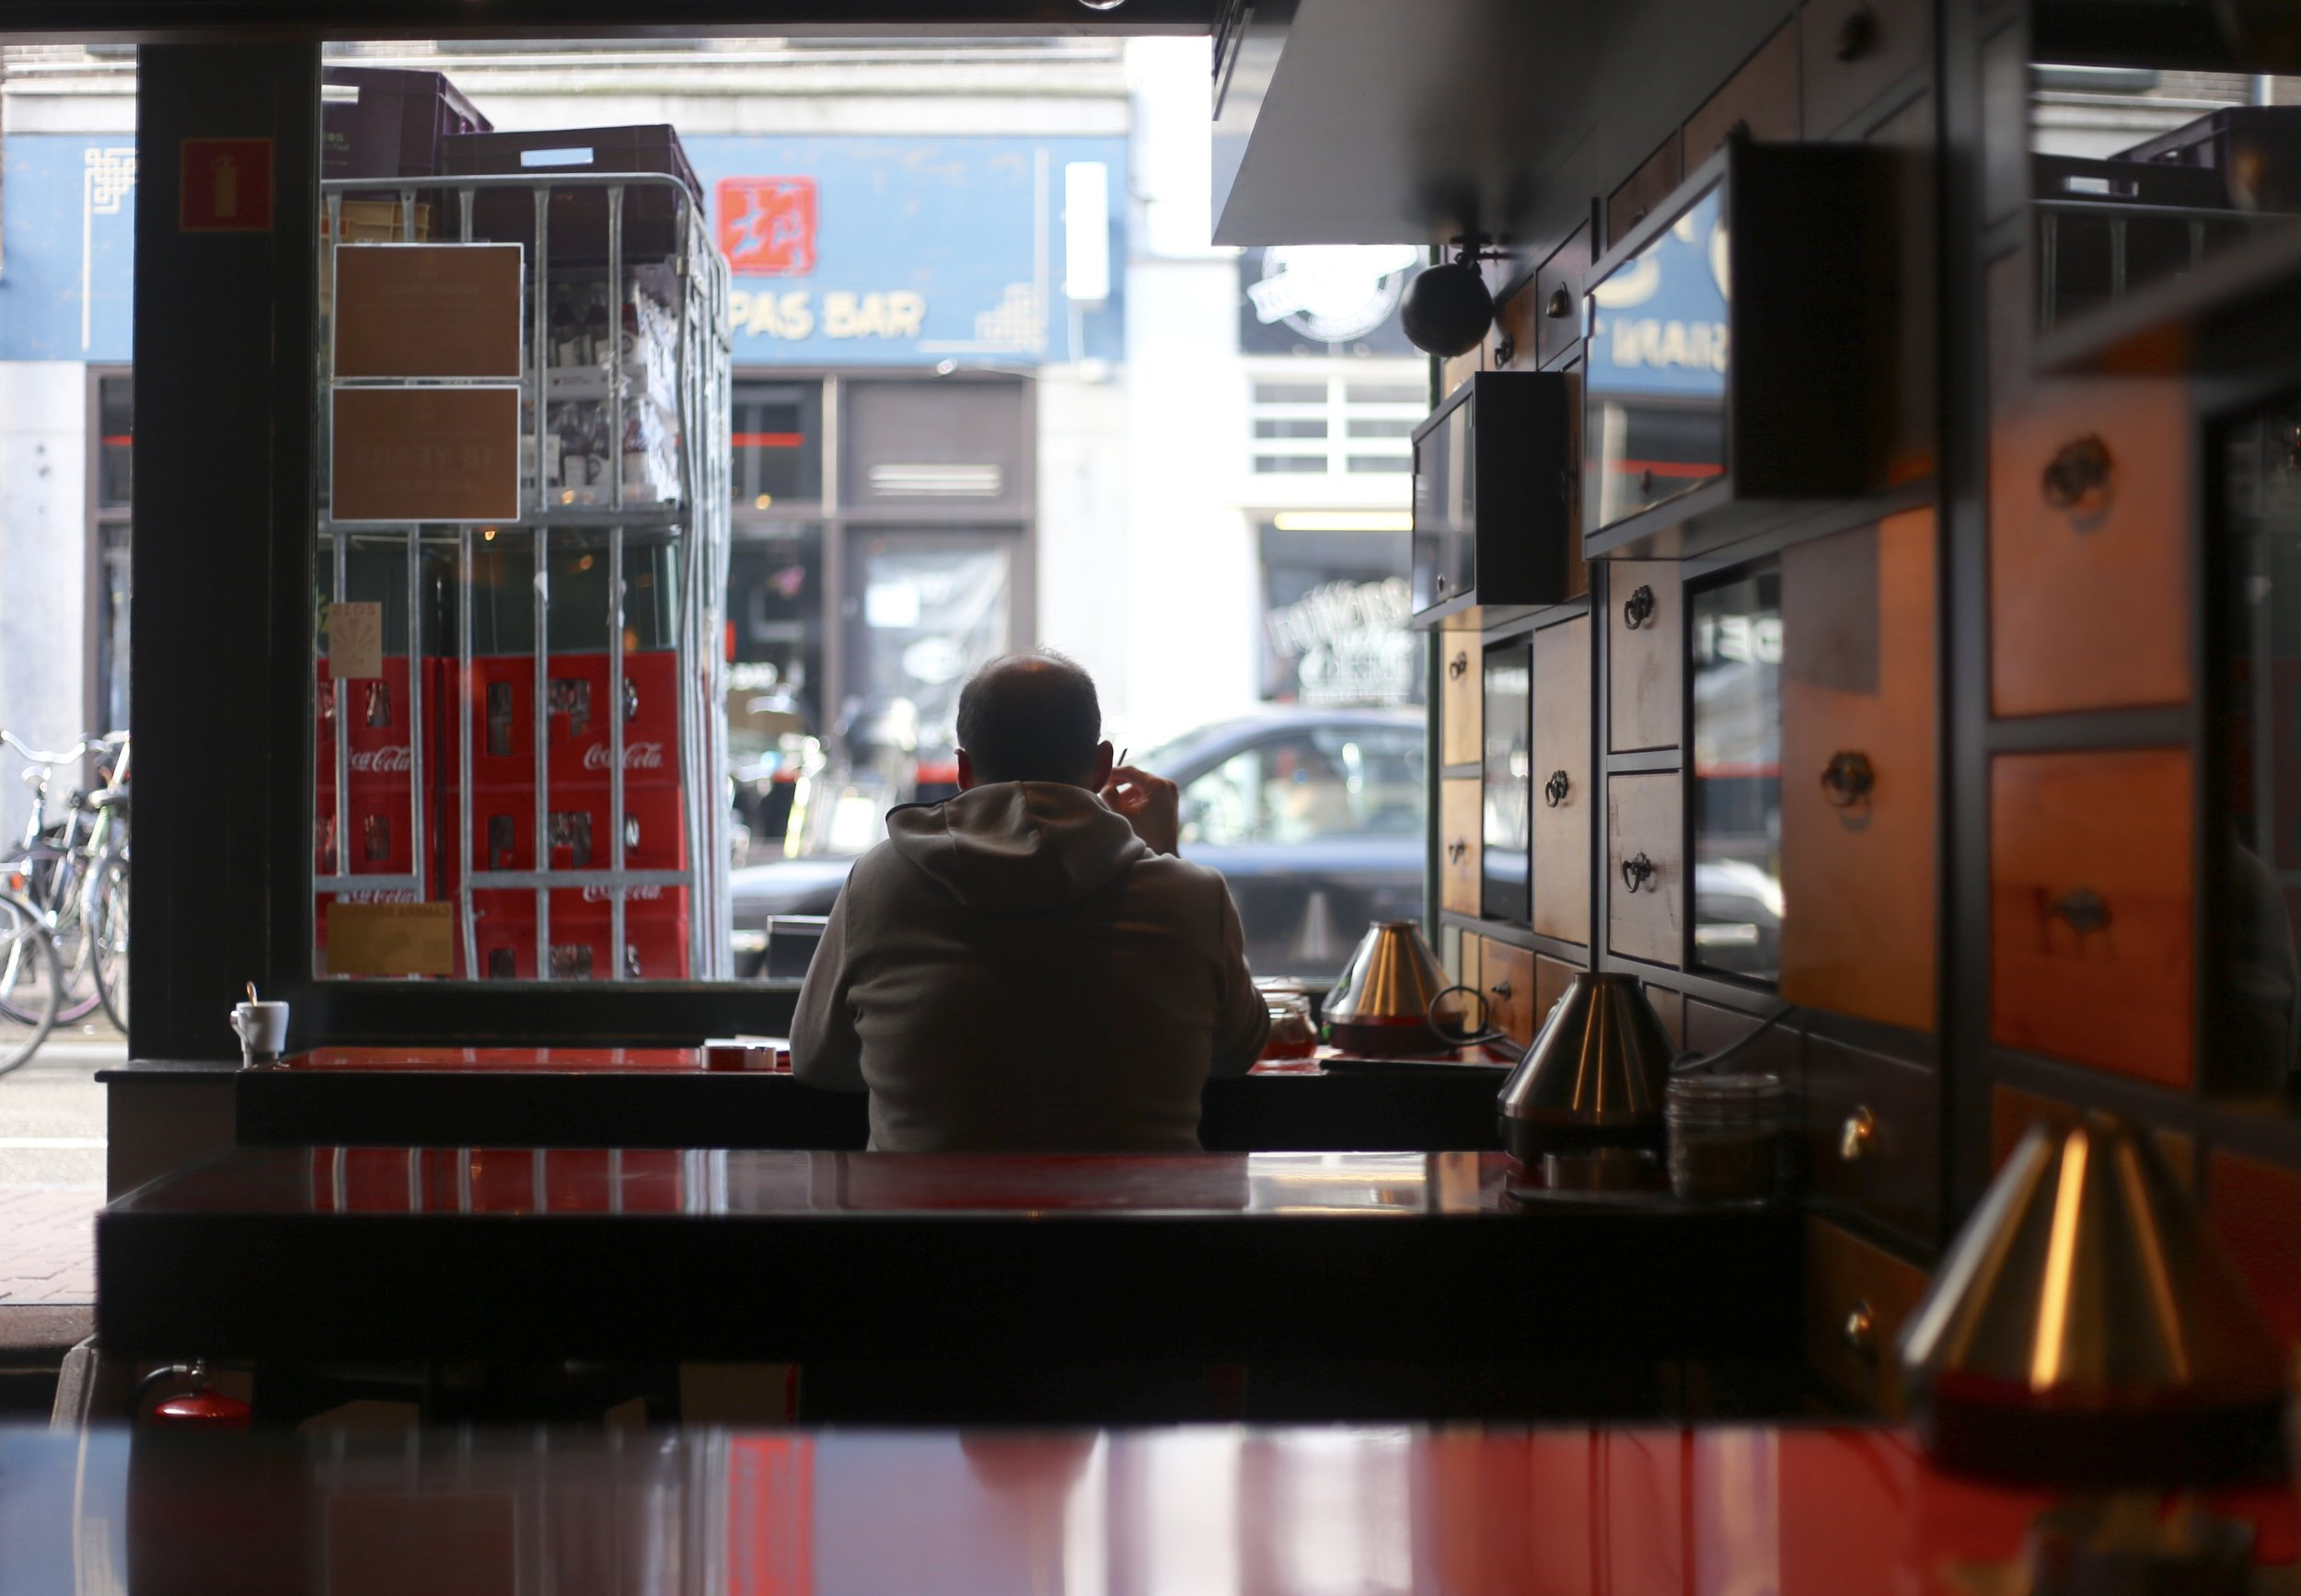 Guy sitting in a coffee shop, smoking and musing on life.